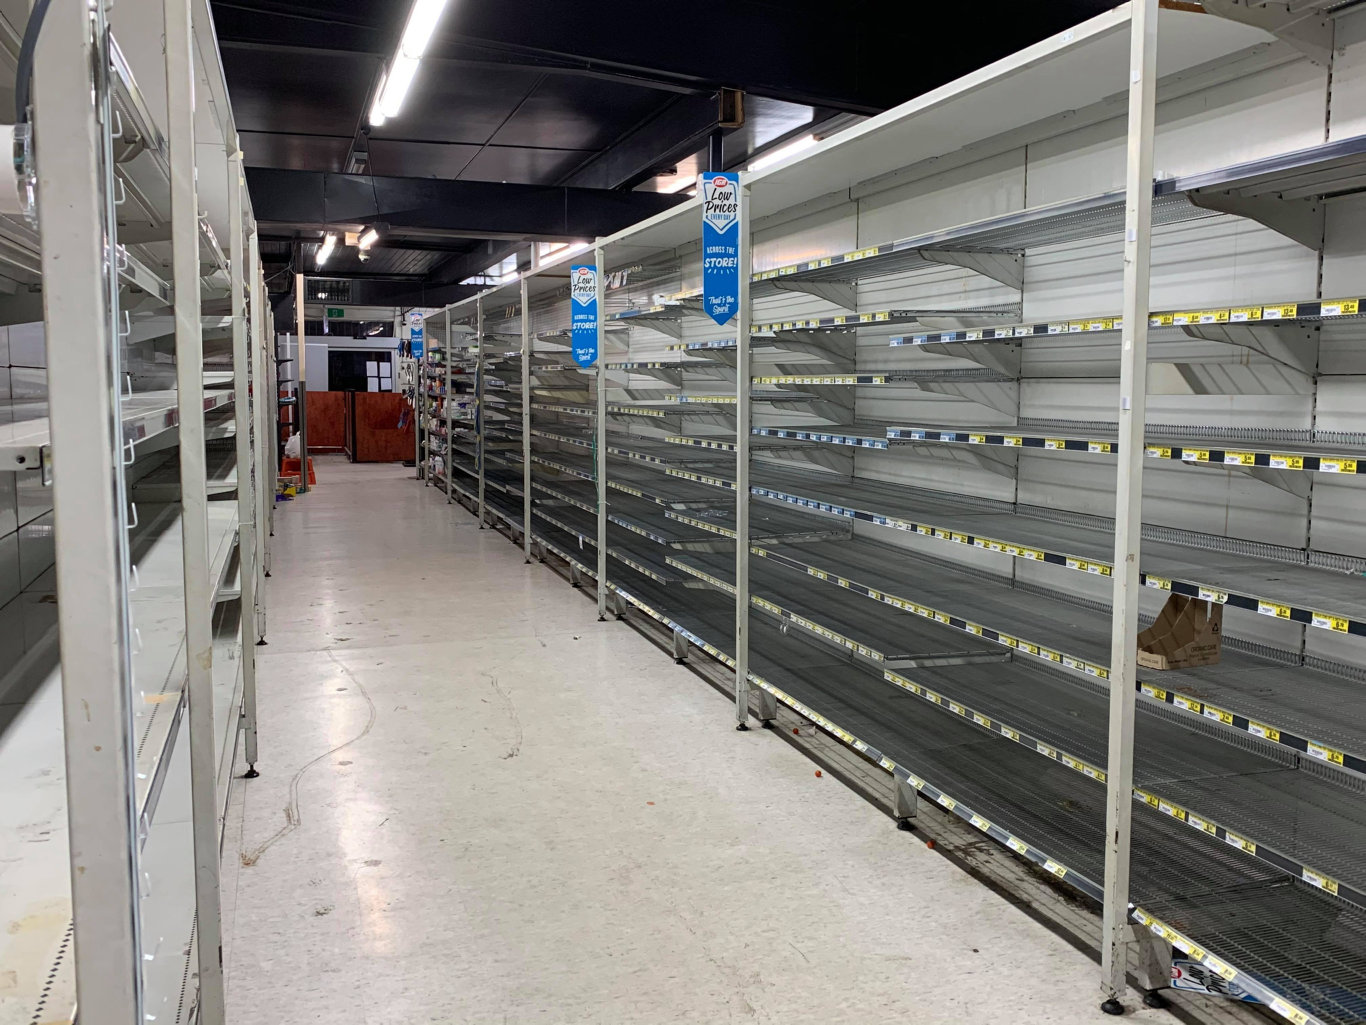 Nick's IGA owner Nick Habgood said they were permanently closing down the Shakespeare St store and were now selling stock at 50 per cent off until it was cleared. Photo: Heidi Petith